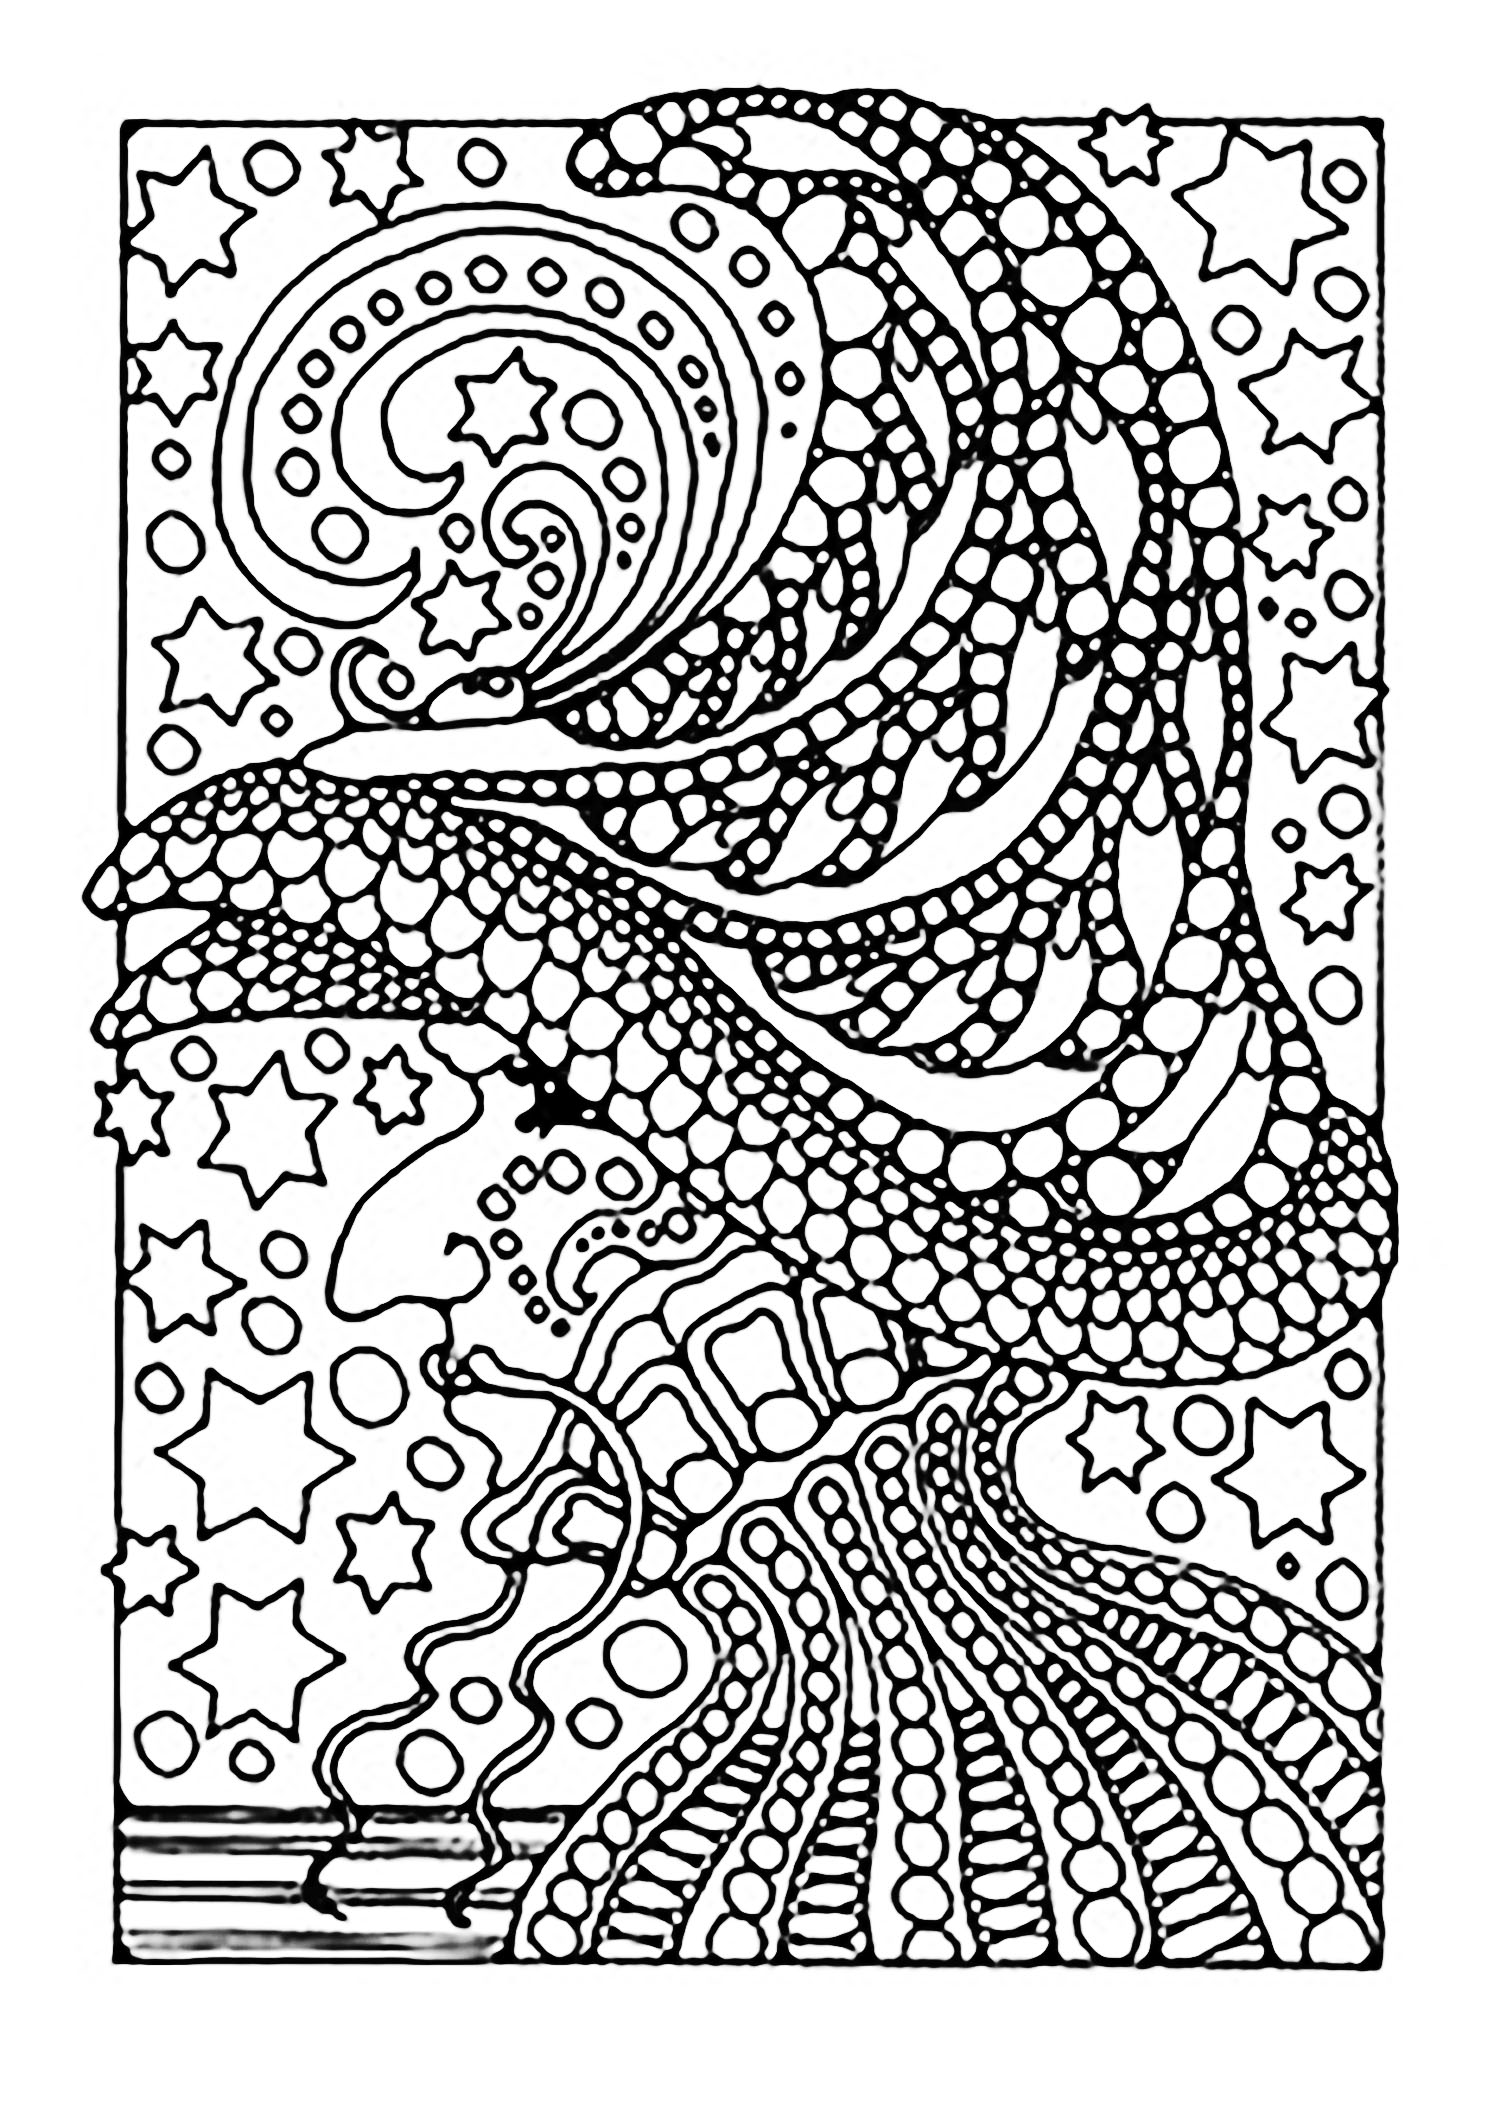 Halloween witch and stars halloween adult coloring pages for Halloween coloring pages for adults printables